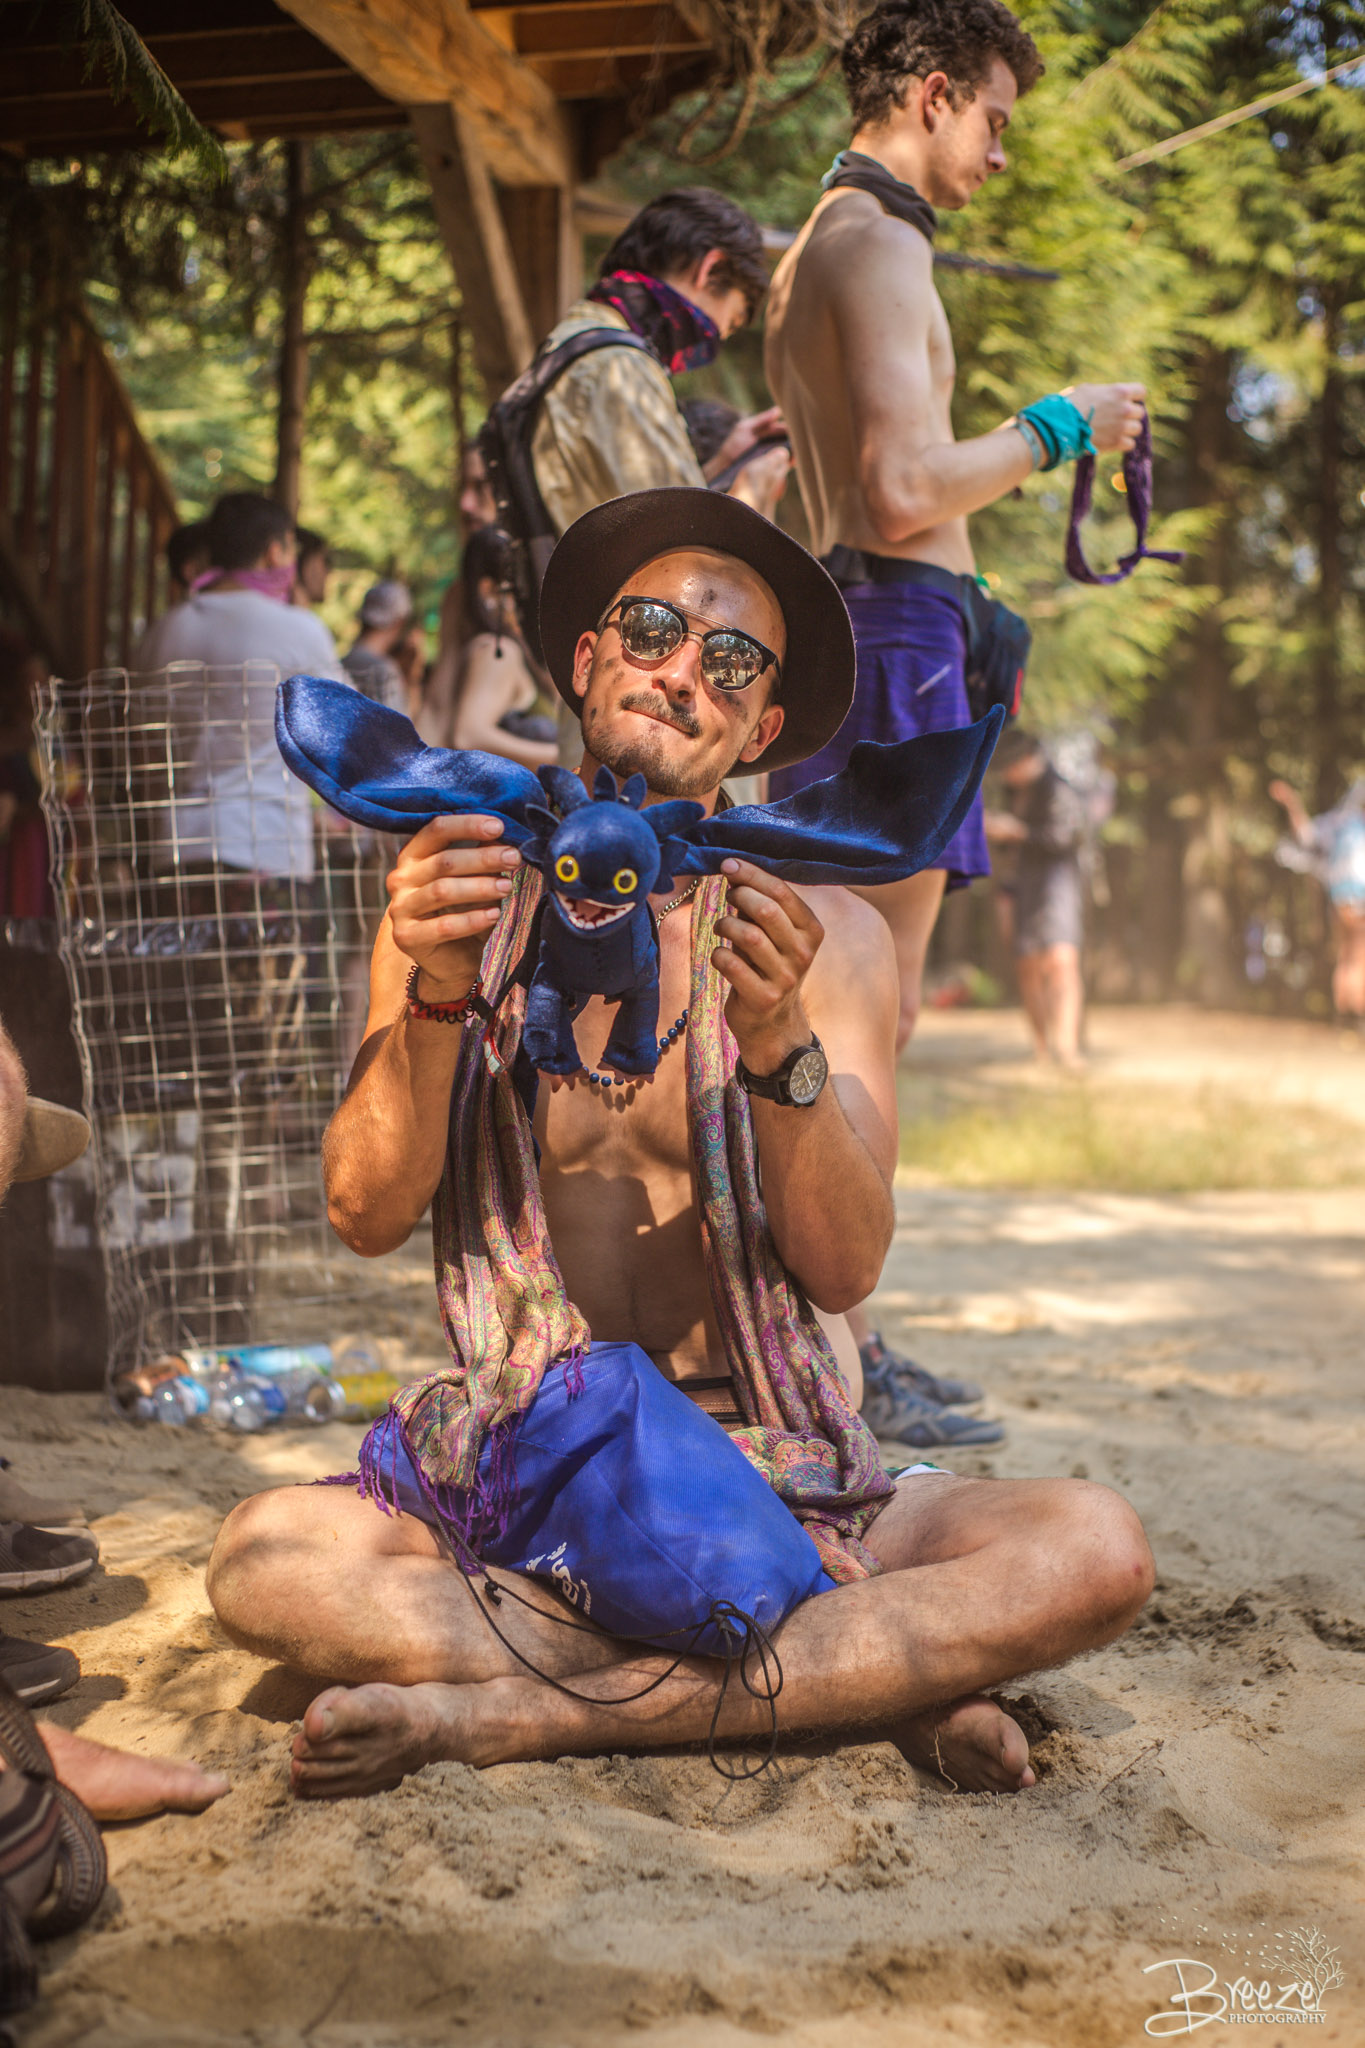 Brie'Ana Breeze Photography & Media - Shambhala 2018-0526.jpg